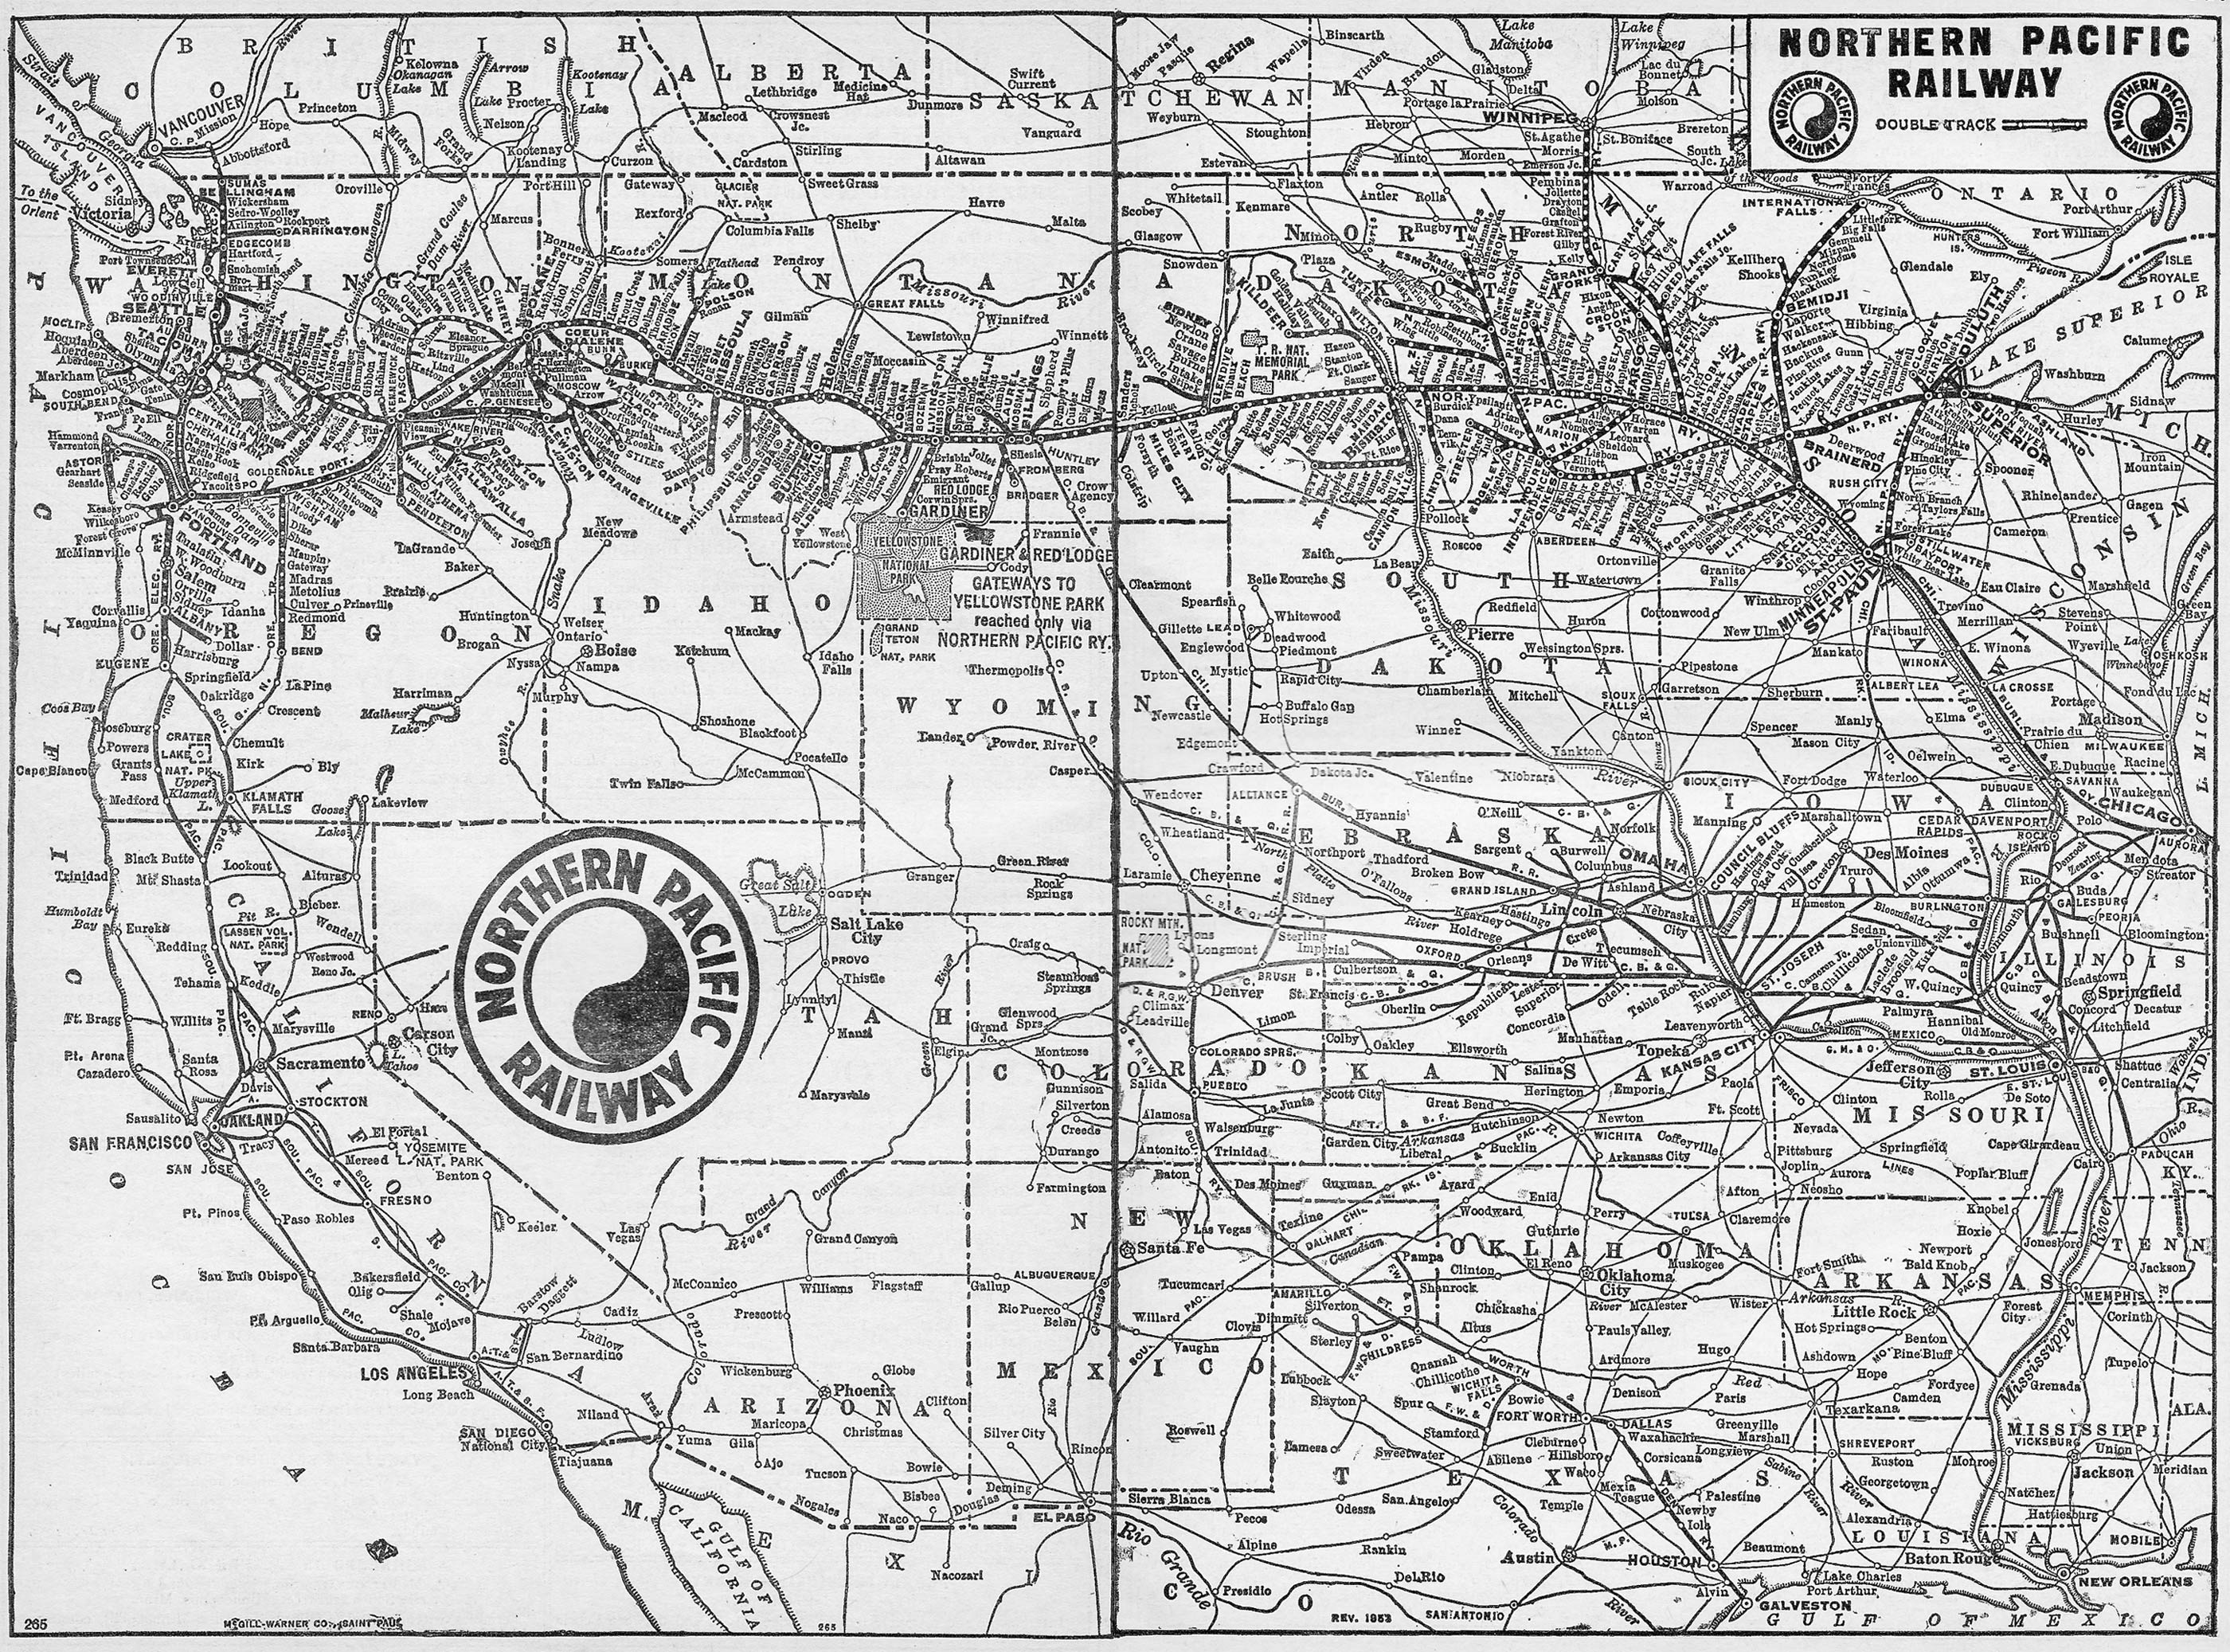 The Northern Pacific Railway - Us transcontinental railroad map